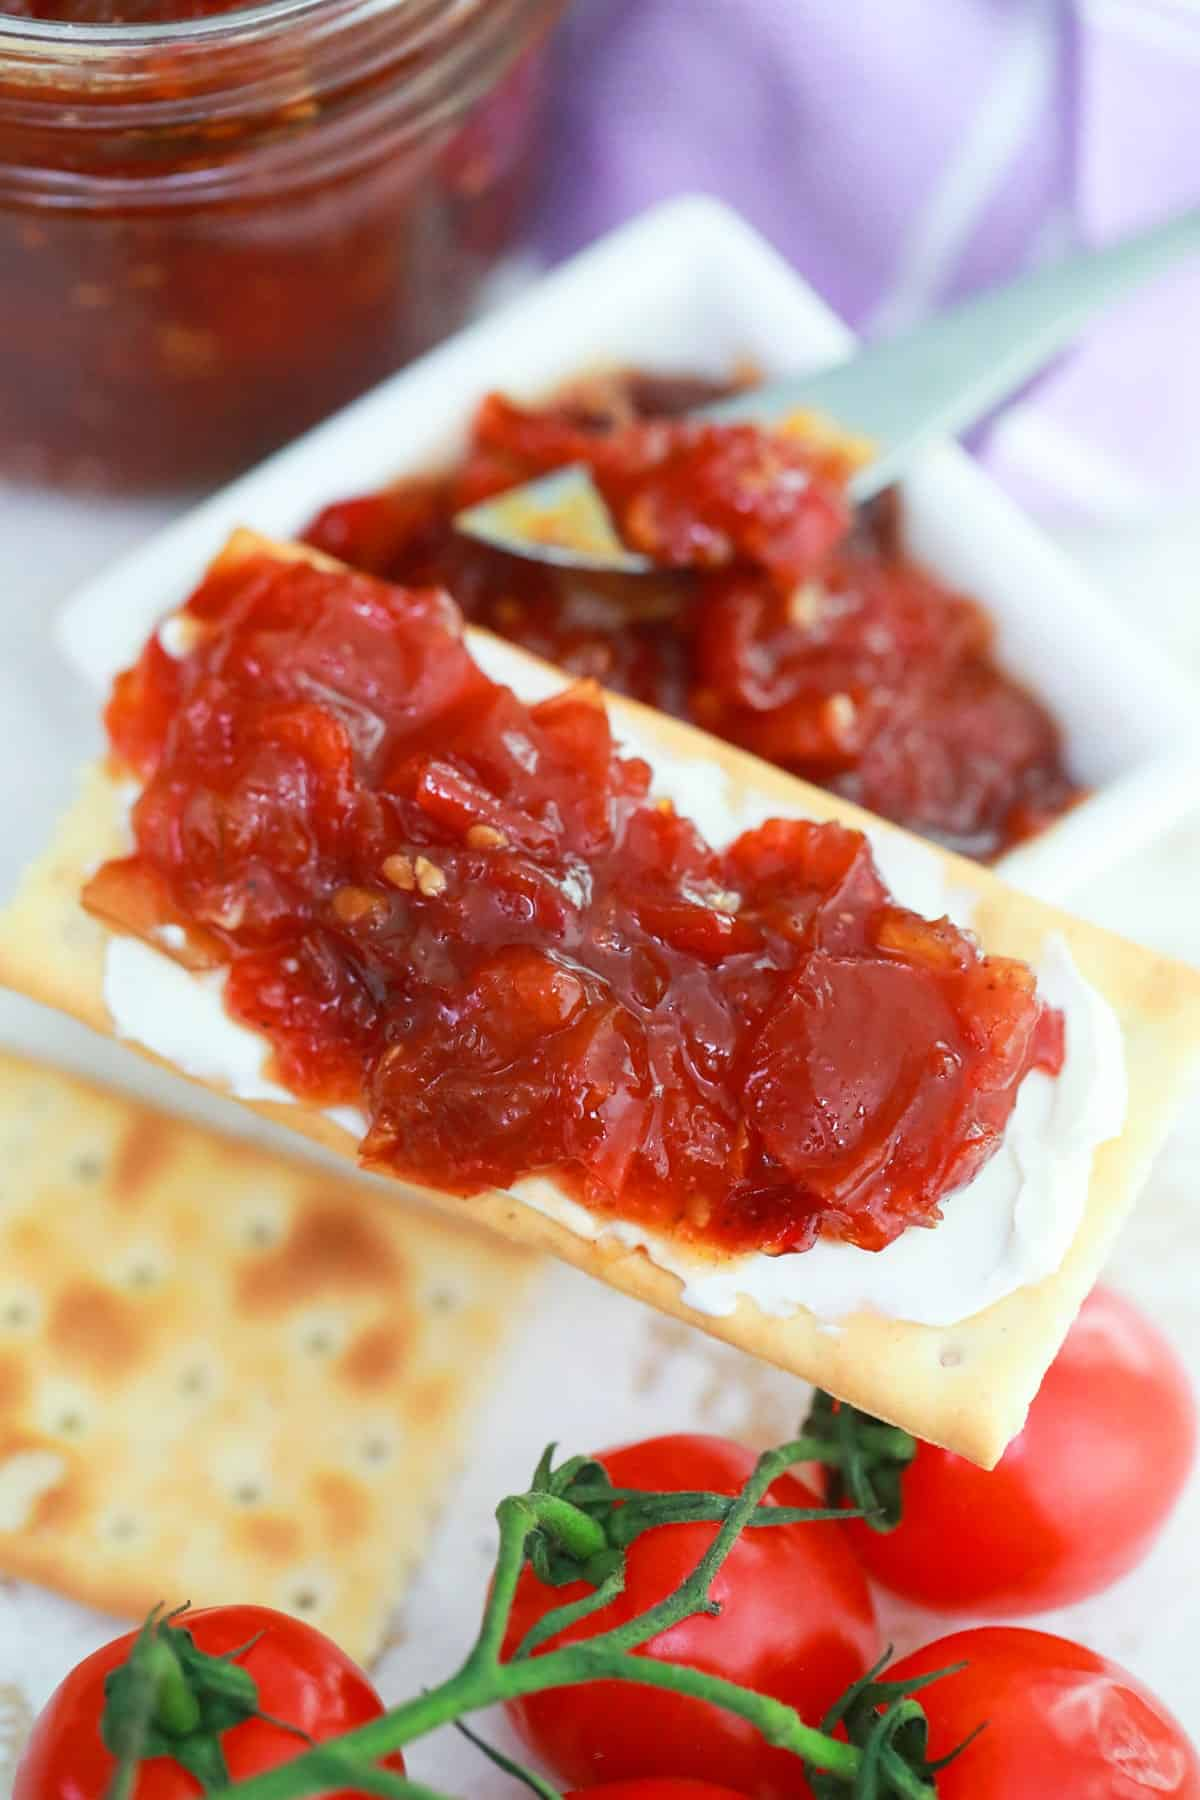 Tomato jam on a cracker with cream cheese.